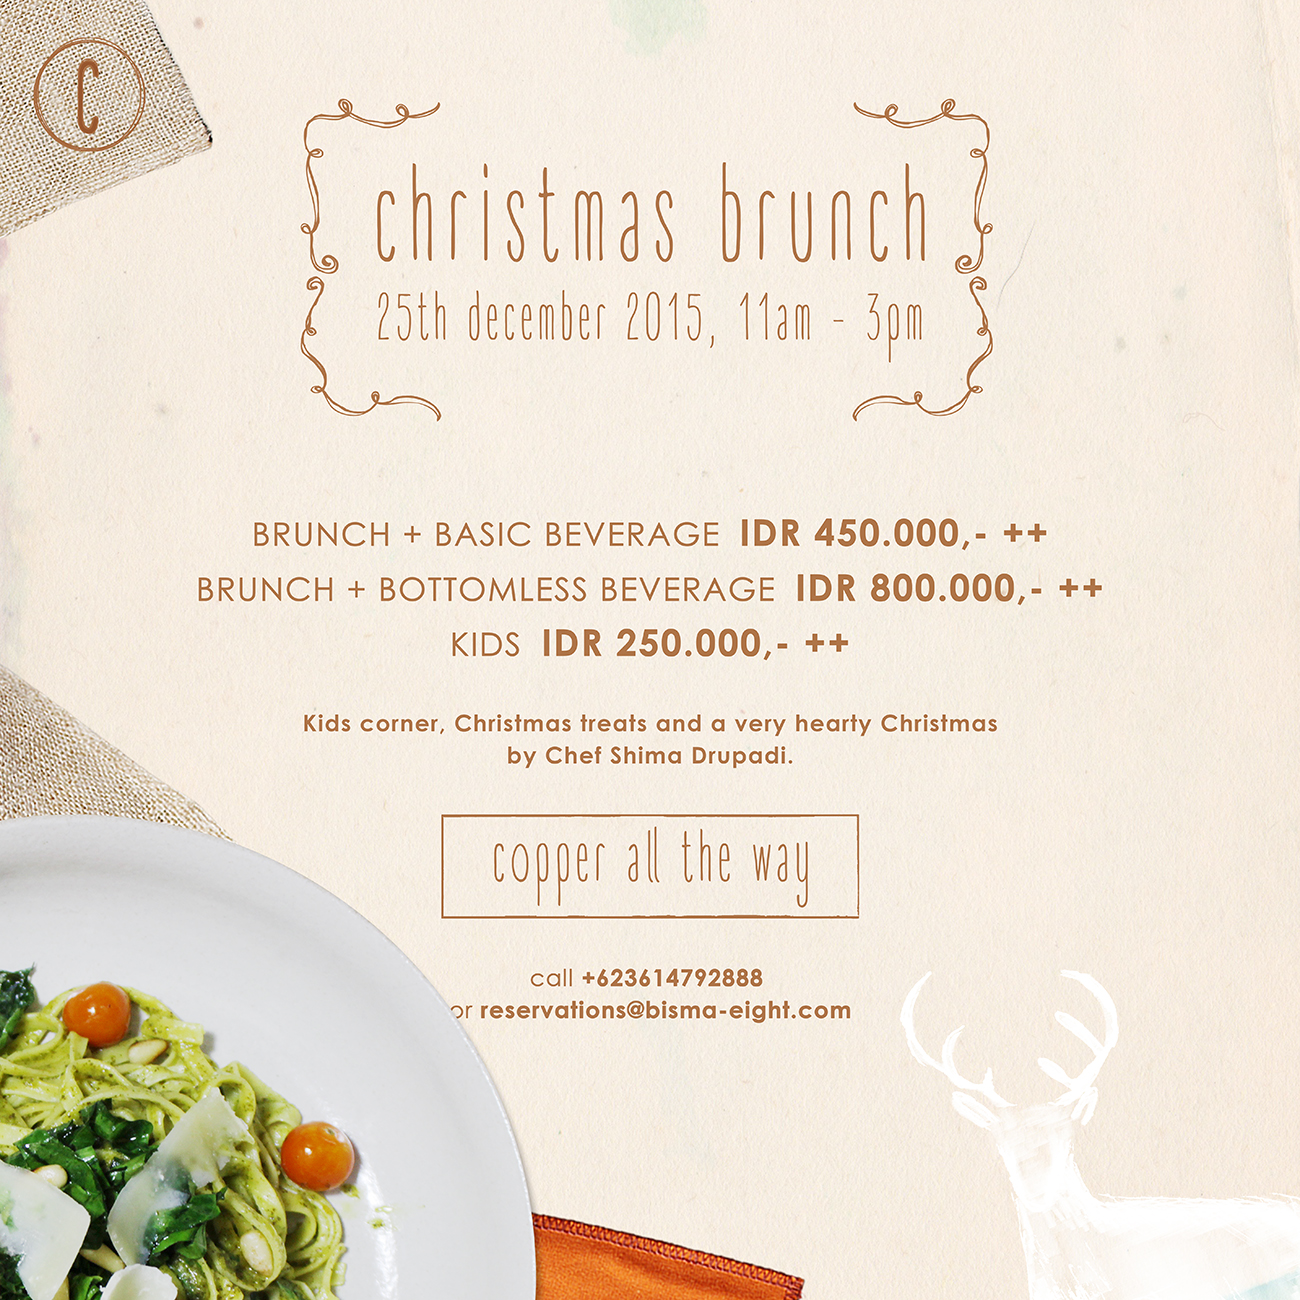 ChristmasBrunch-updated.jpg